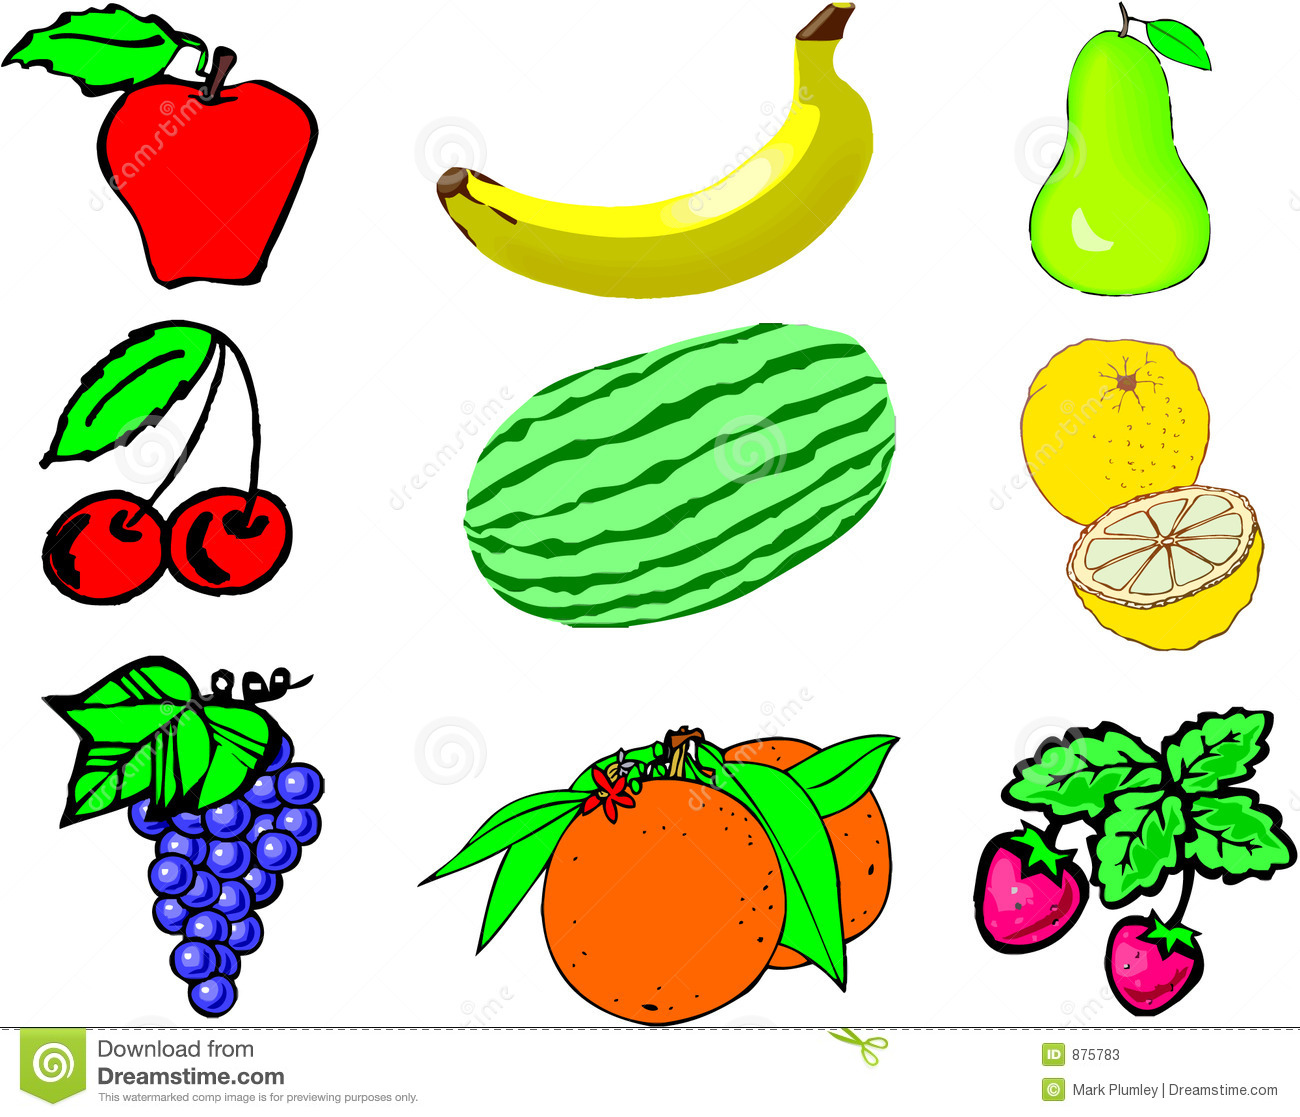 Fruit Collage Stock Photos - Image: 875783